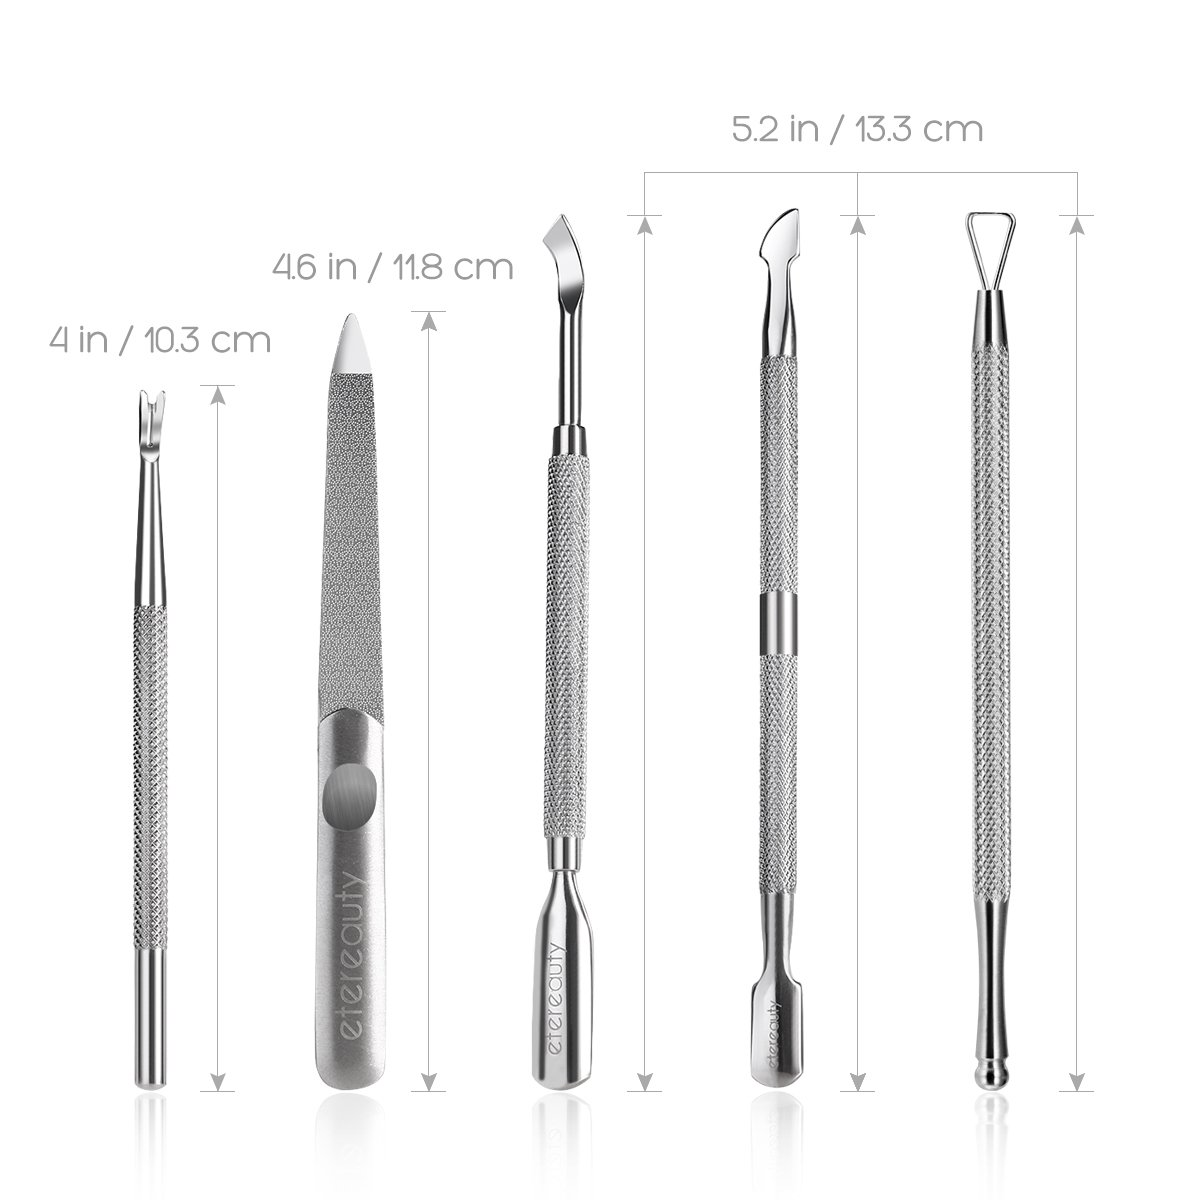 Stainless Steel Cuticle Pusher Cuticle Remover with Storage Case